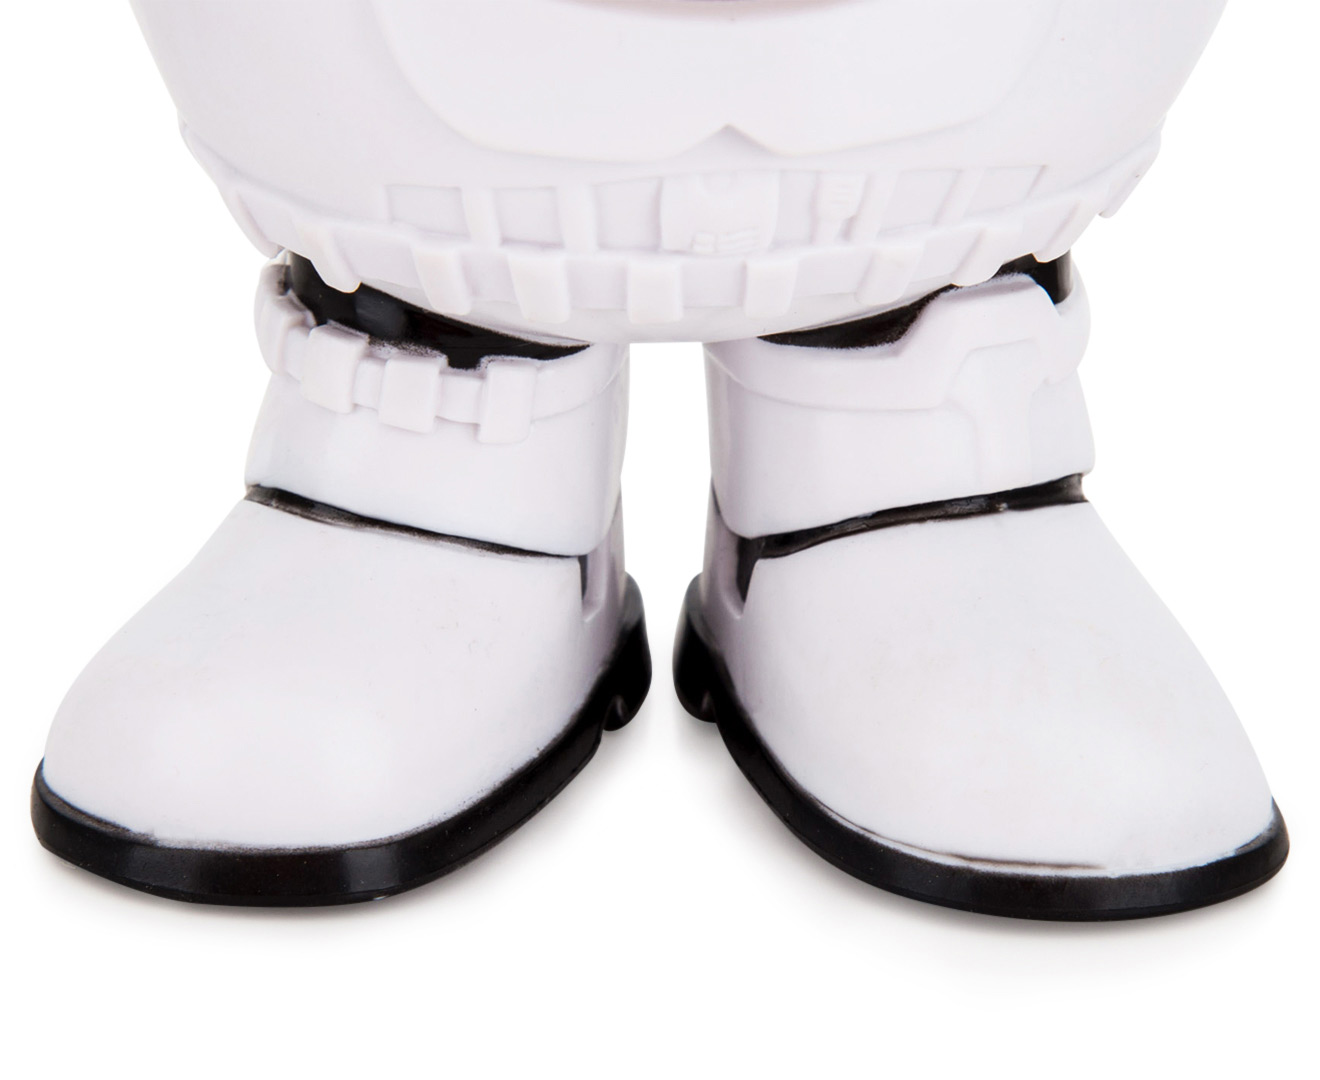 Stormtrooper Shoes Australia